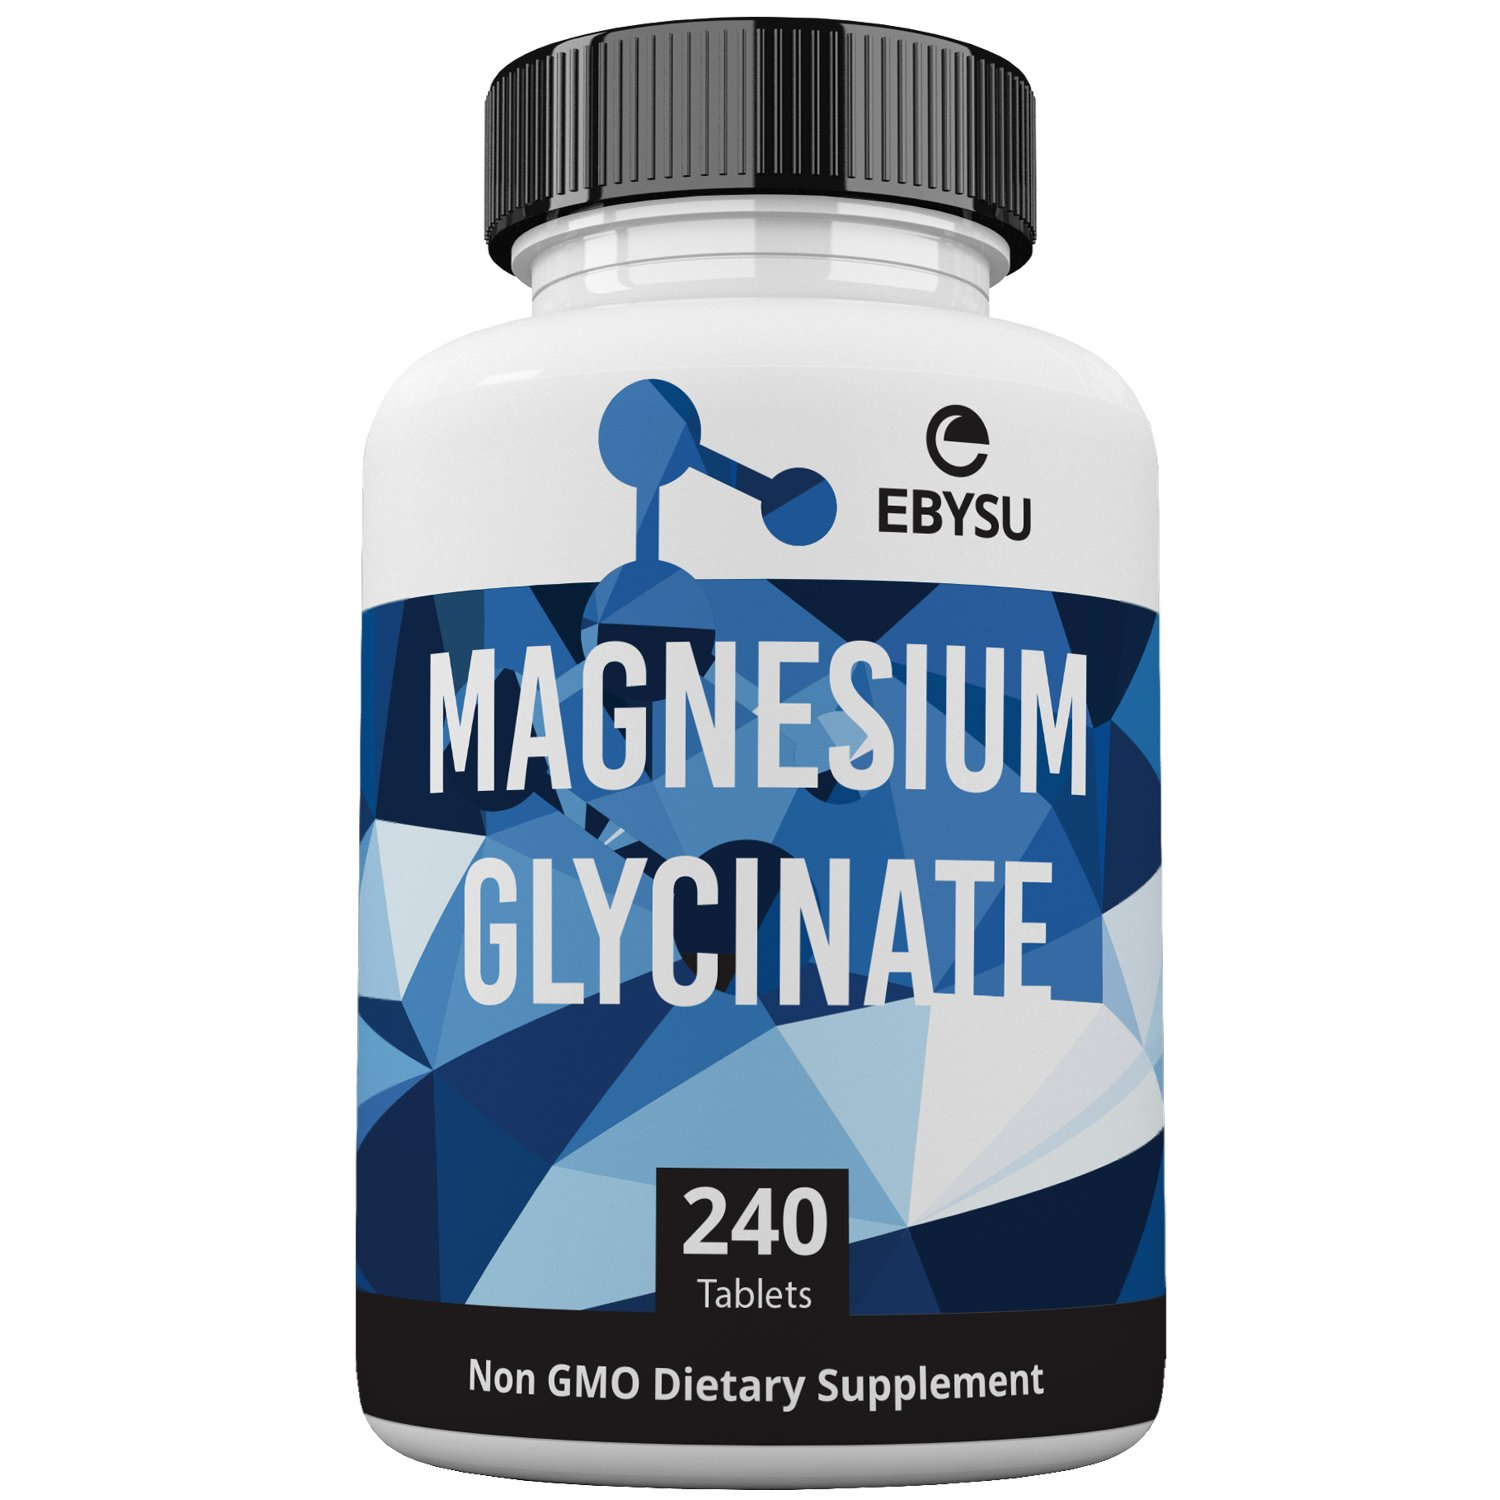 Magnesium Glycinate - 240 Day Supply - Mag Complex Supplement Formulated for High Absorption, Calm, Muscle Relax & Gentle Digestion, Vegan, Non-GMO, Gluten-Free, Soy Free, Bioavailable